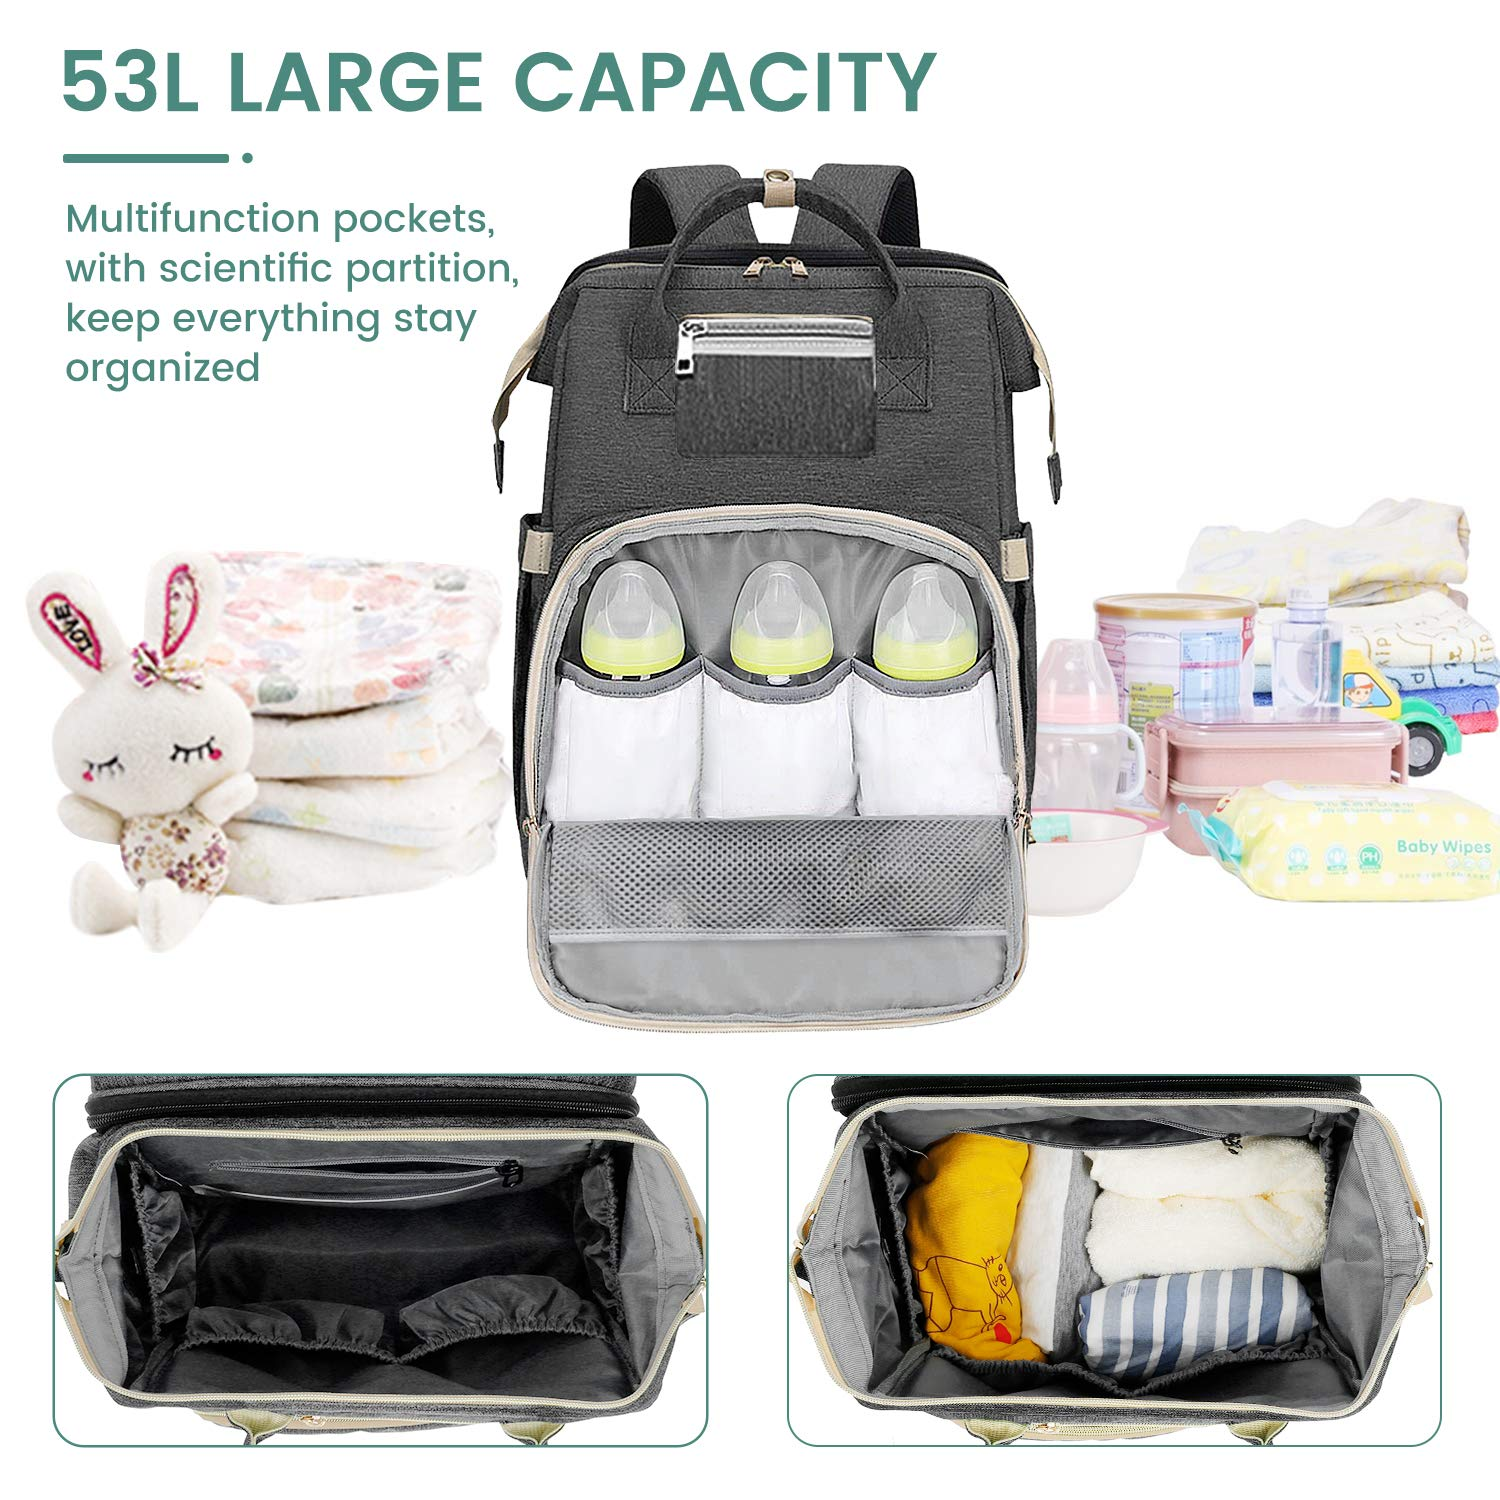 3 in 1 Diaper Bag Backpack with Bassinet,Portable Travel Crib Changing Station Foldable Bed Convertible Newborn Registry Baby Shower Gifts Essentials Accessories Stuff for Girls Boys Men Dad Mom